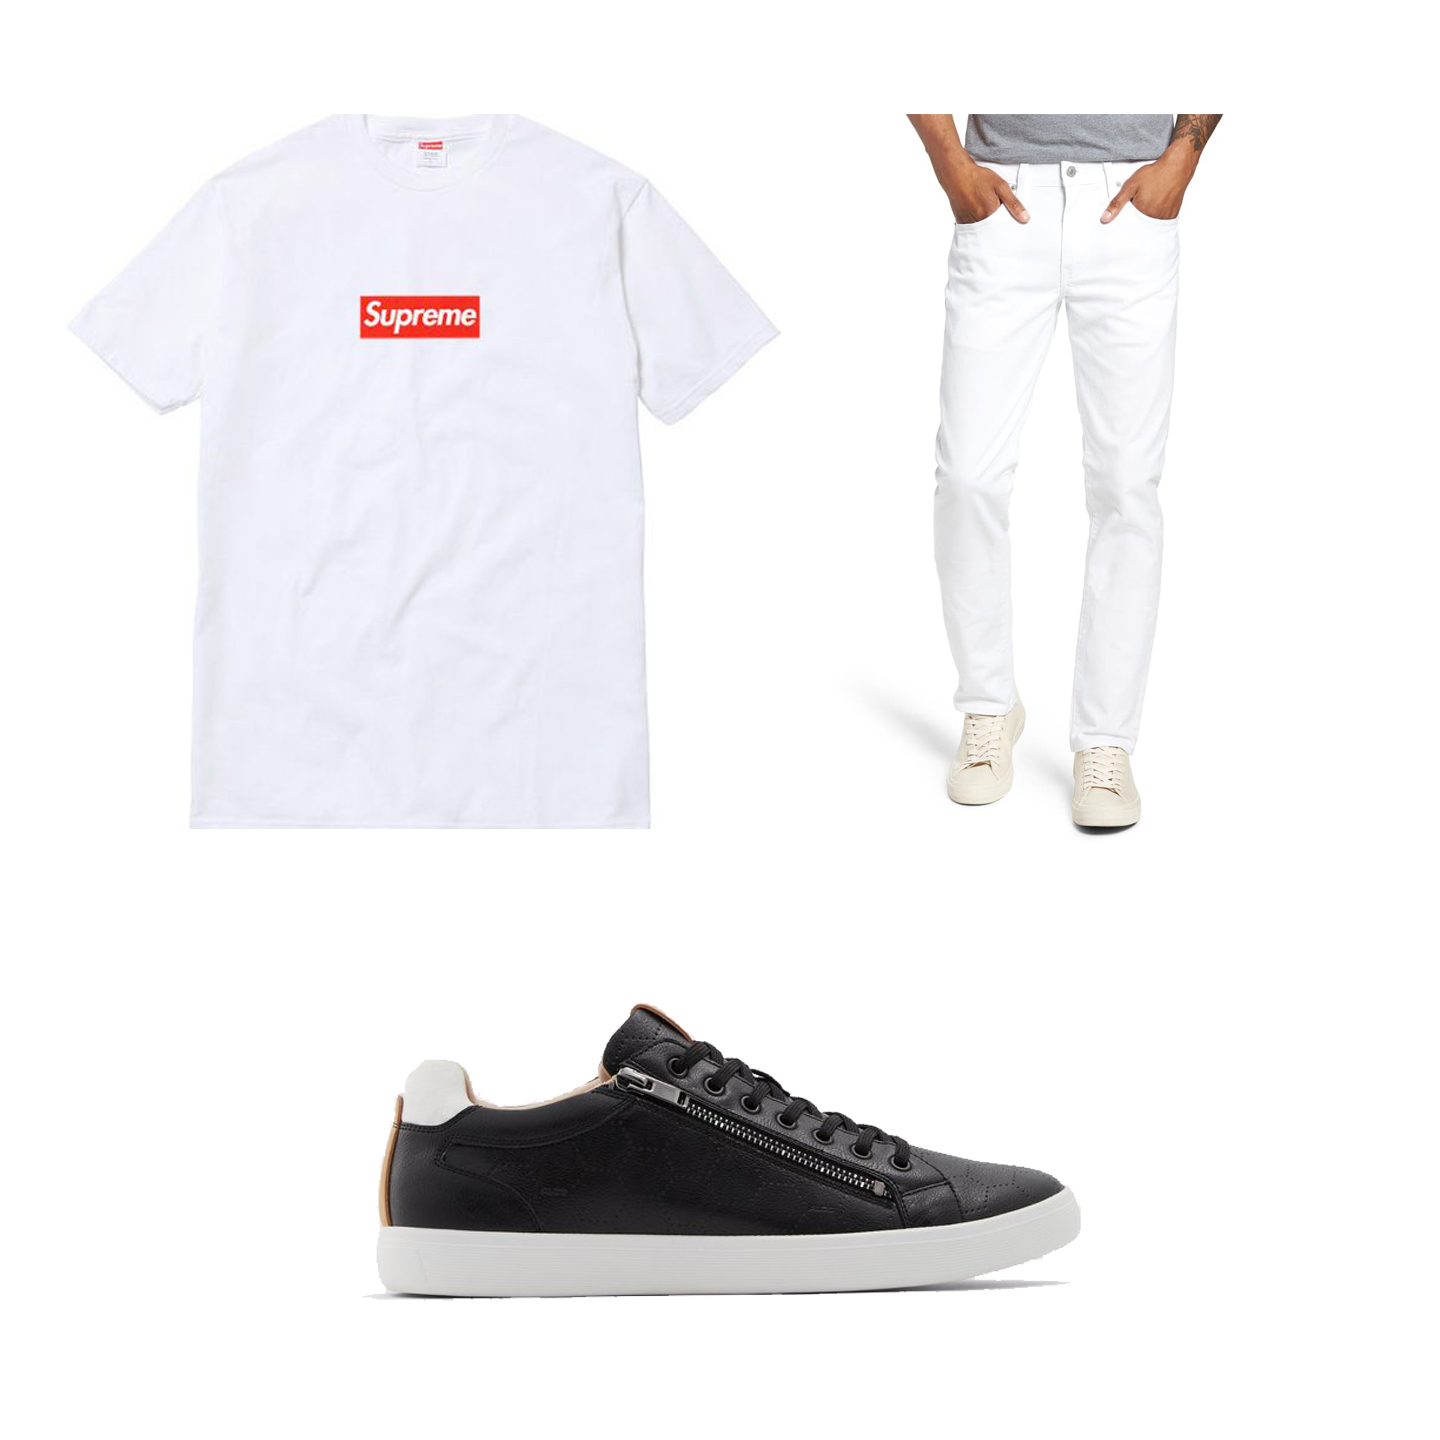 Supreme  Box Logo T-Shirt $50, Aldo  Zaywia  Shoes $80,  Levis 511  Slim Fit Jeans $79